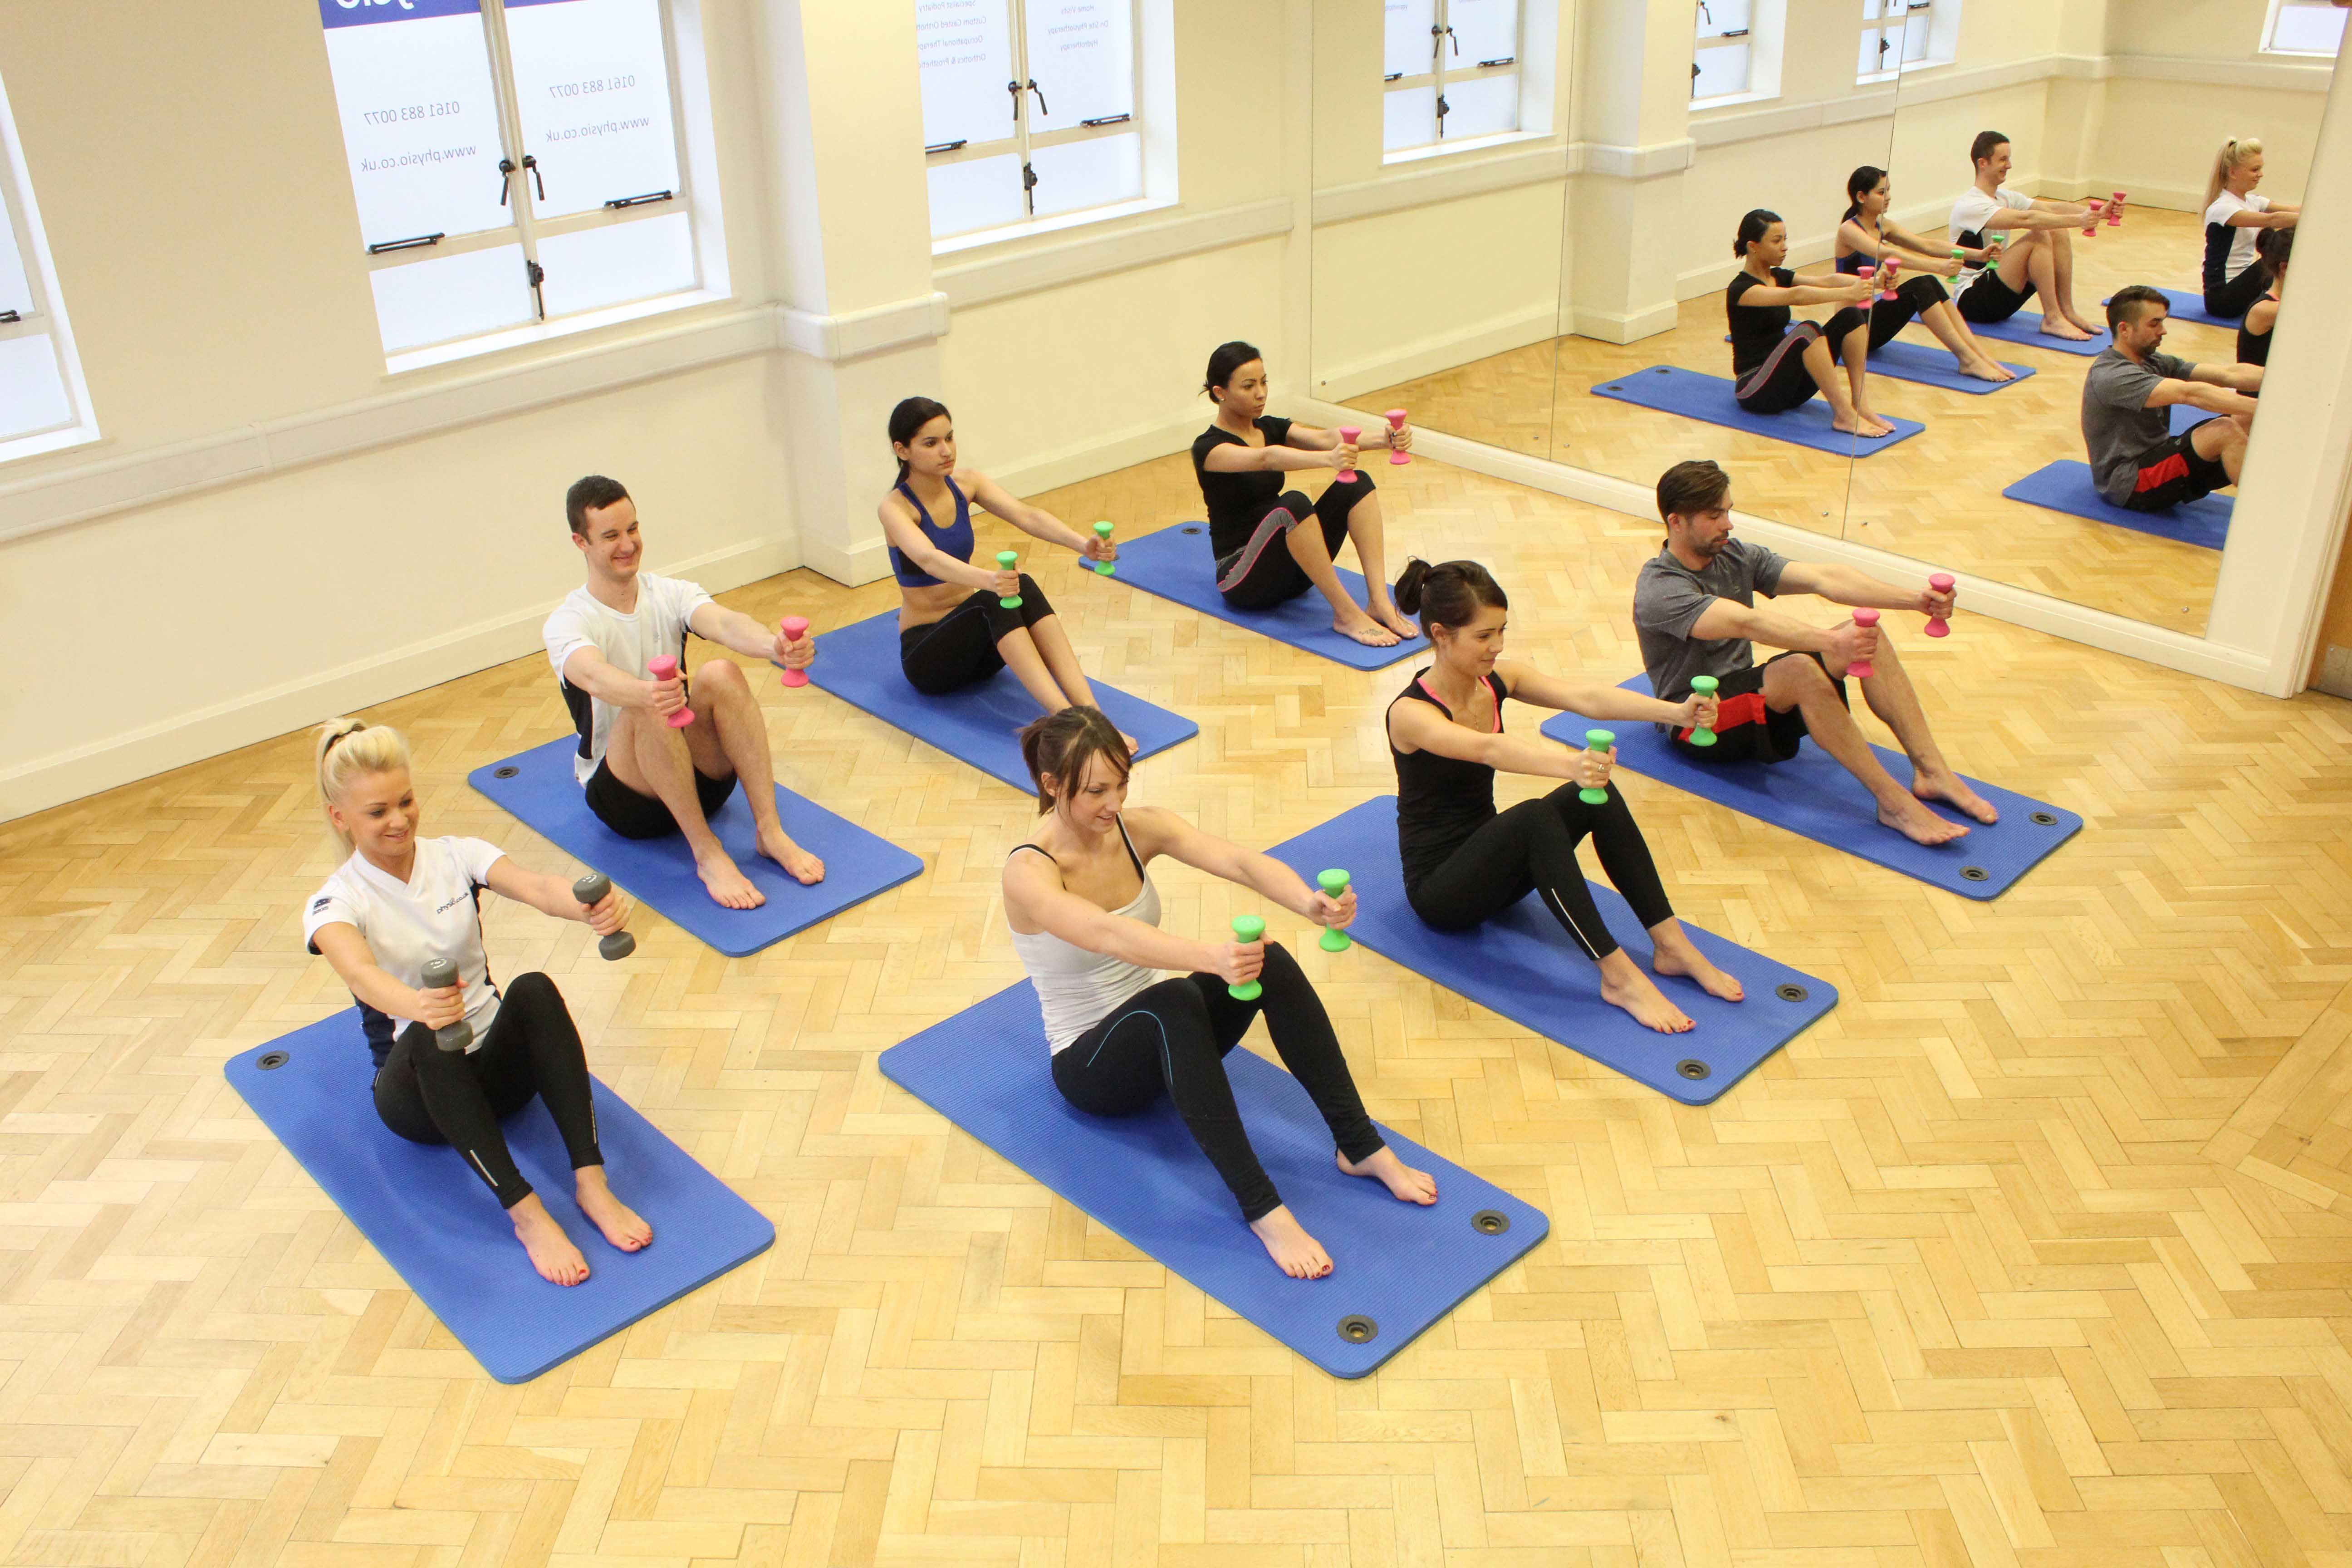 Physiotherapist led pilates class using foam rolls